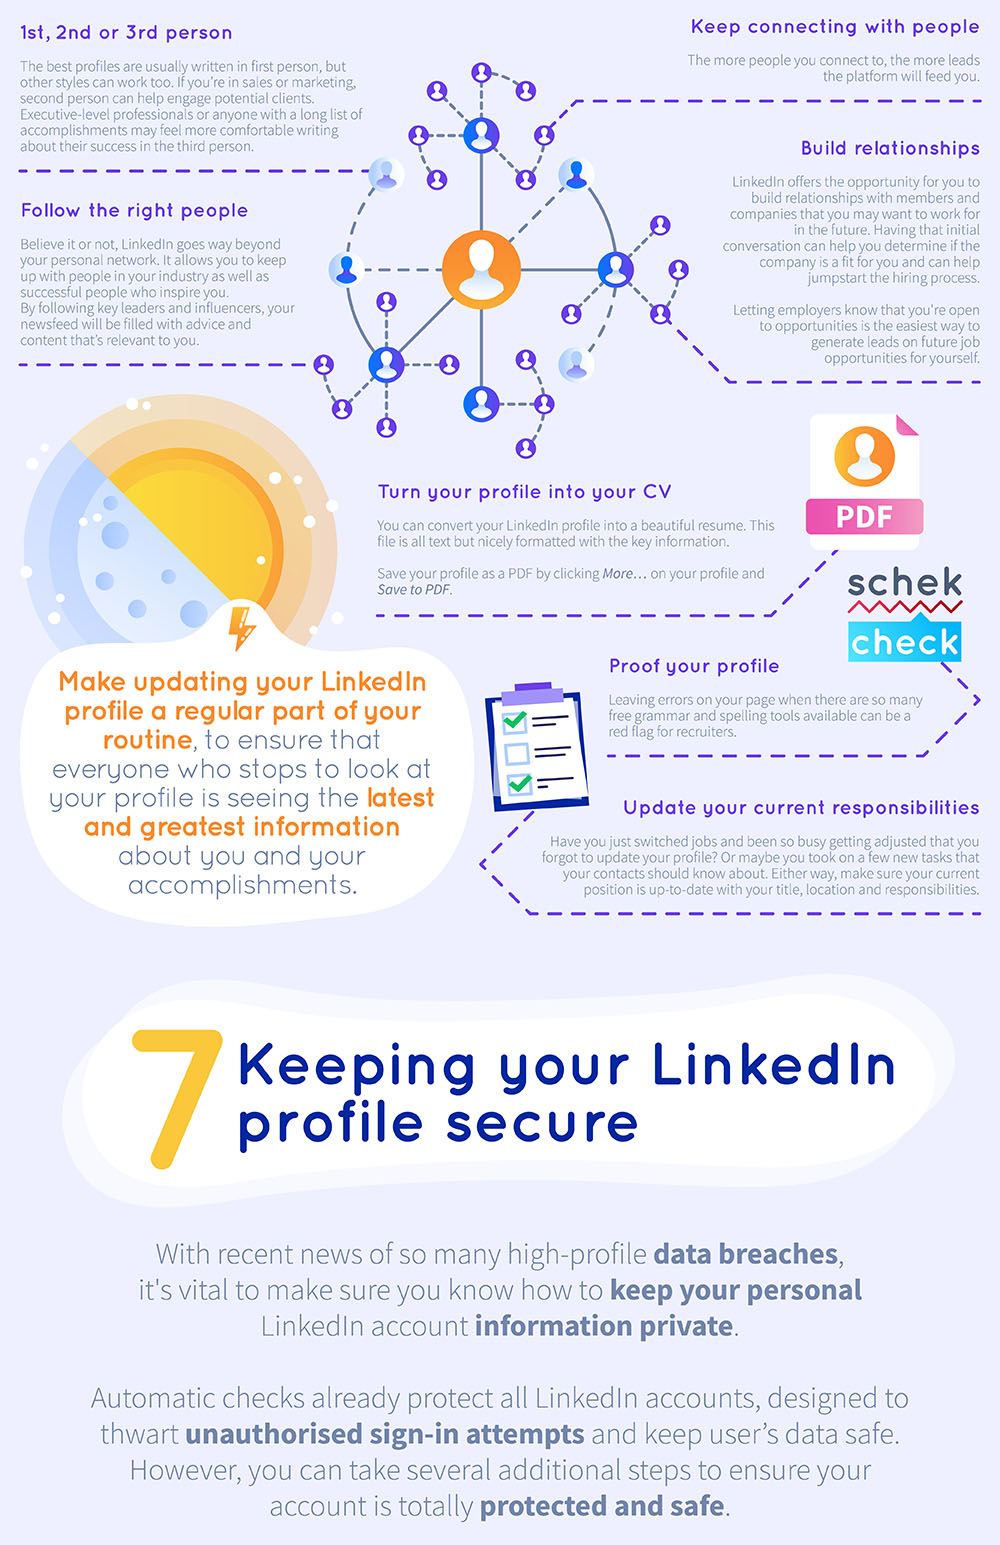 Need a Good LinkedIn Profile? Check Out This Cheat Sheet